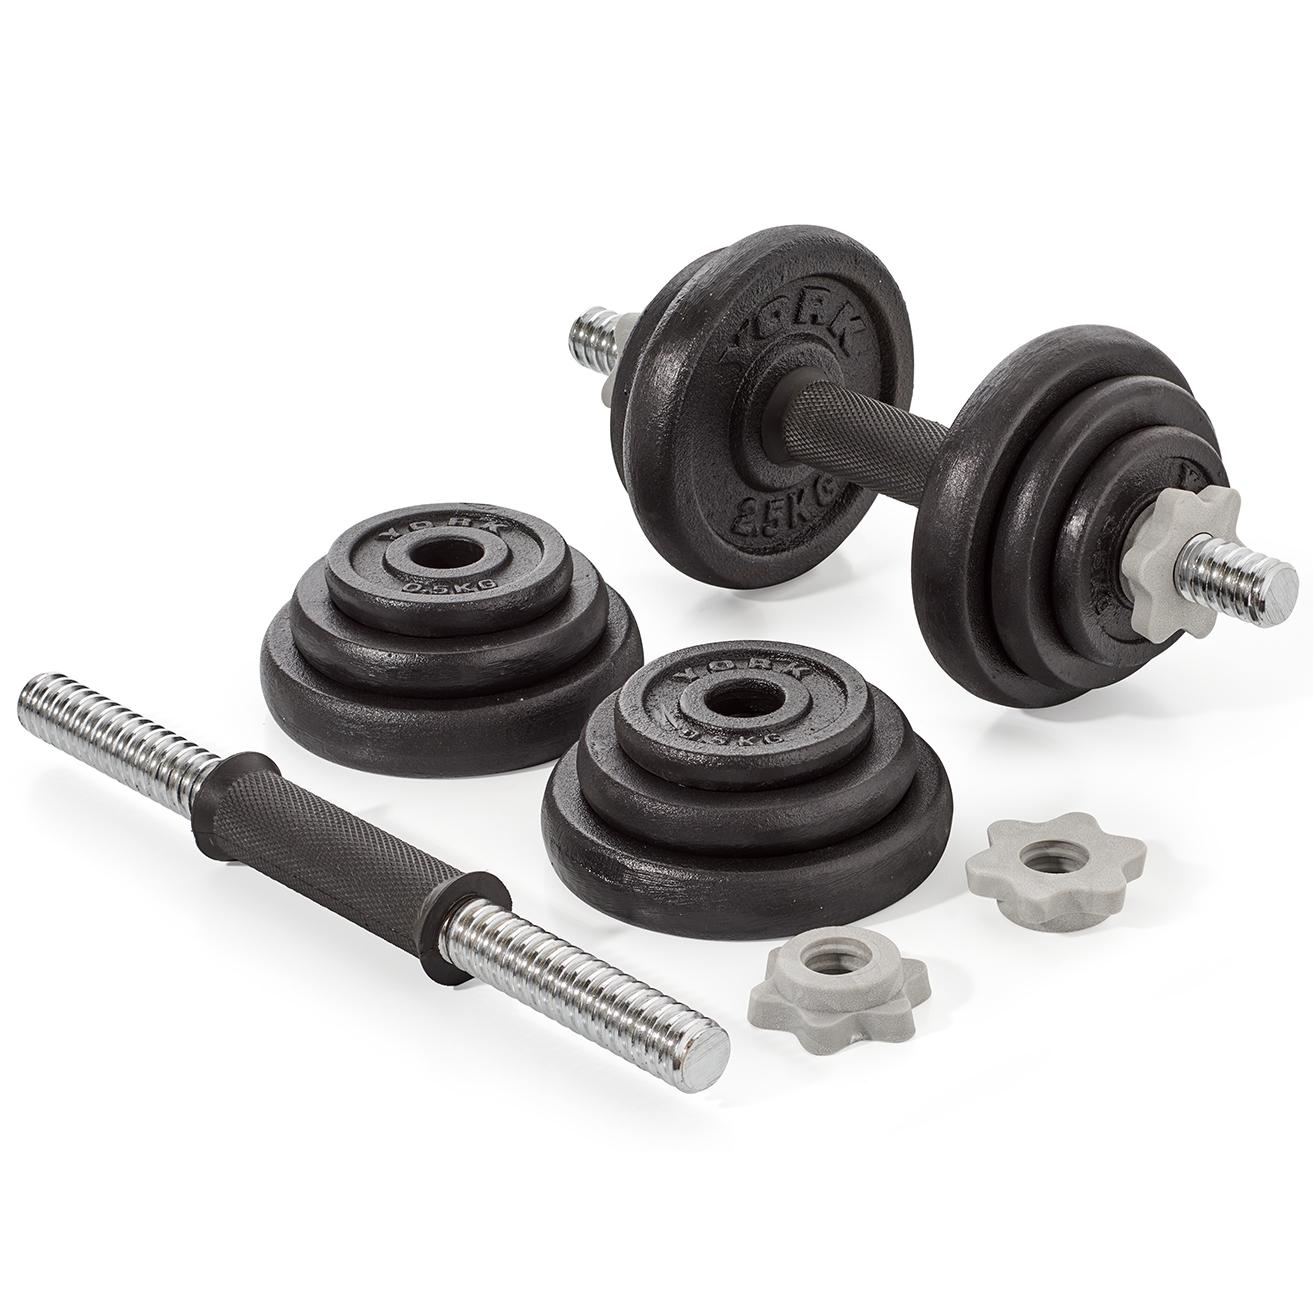 York 30kg Dumbbell Set: York Fitness 20kg Cast Iron Spinlock Dumbbell